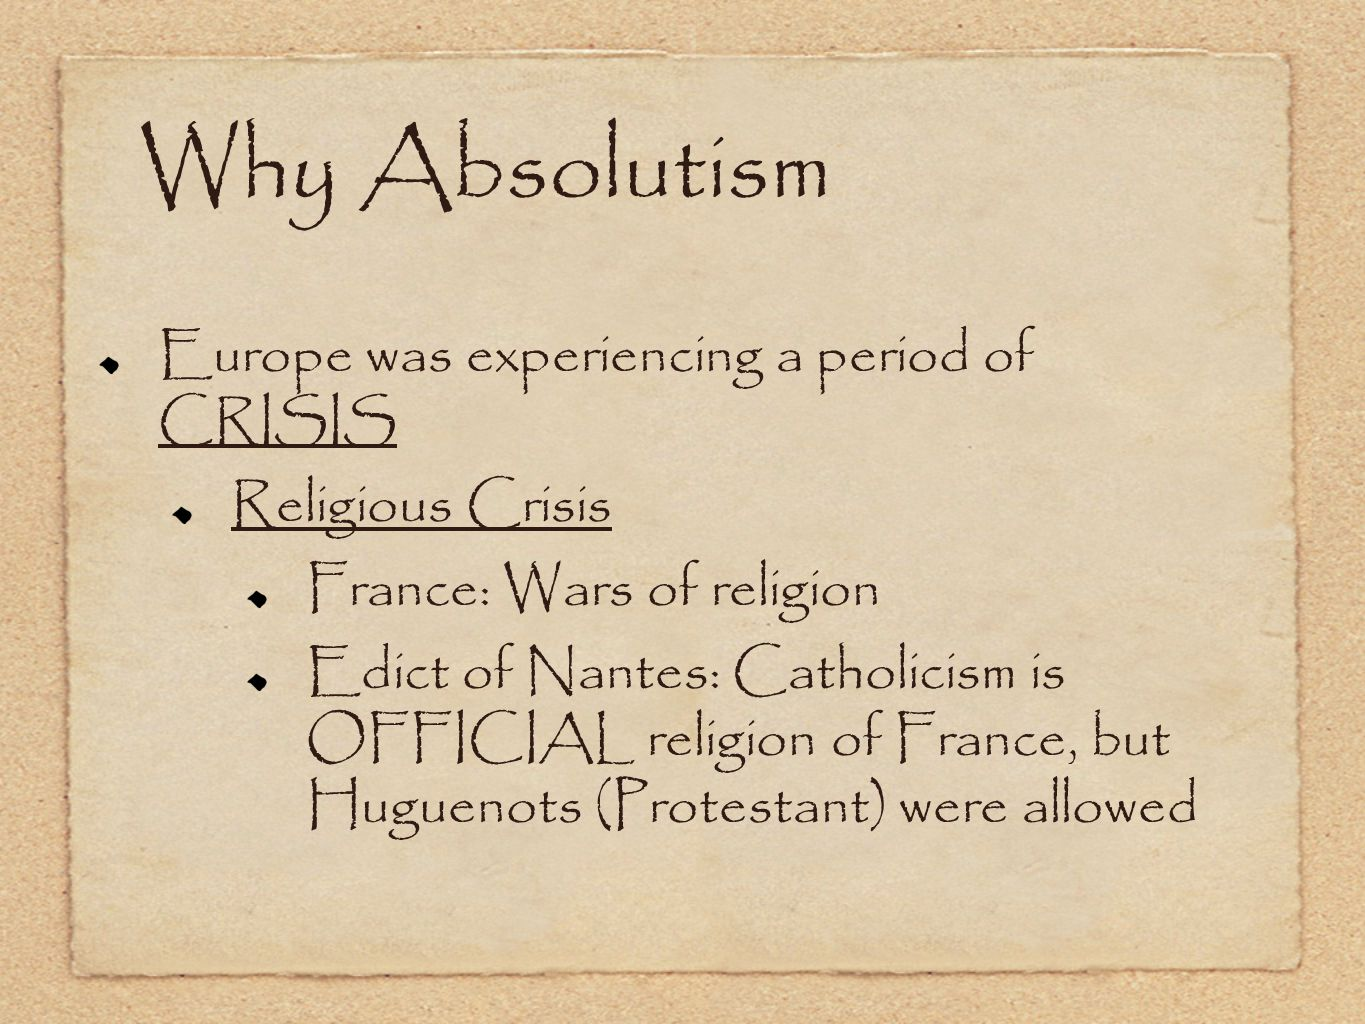 Why Absolutism Europe was experiencing a period of CRISIS Religious Crisis France: Wars of religion Edict of Nantes: Catholicism is OFFICIAL religion of France, but Huguenots (Protestant) were allowed